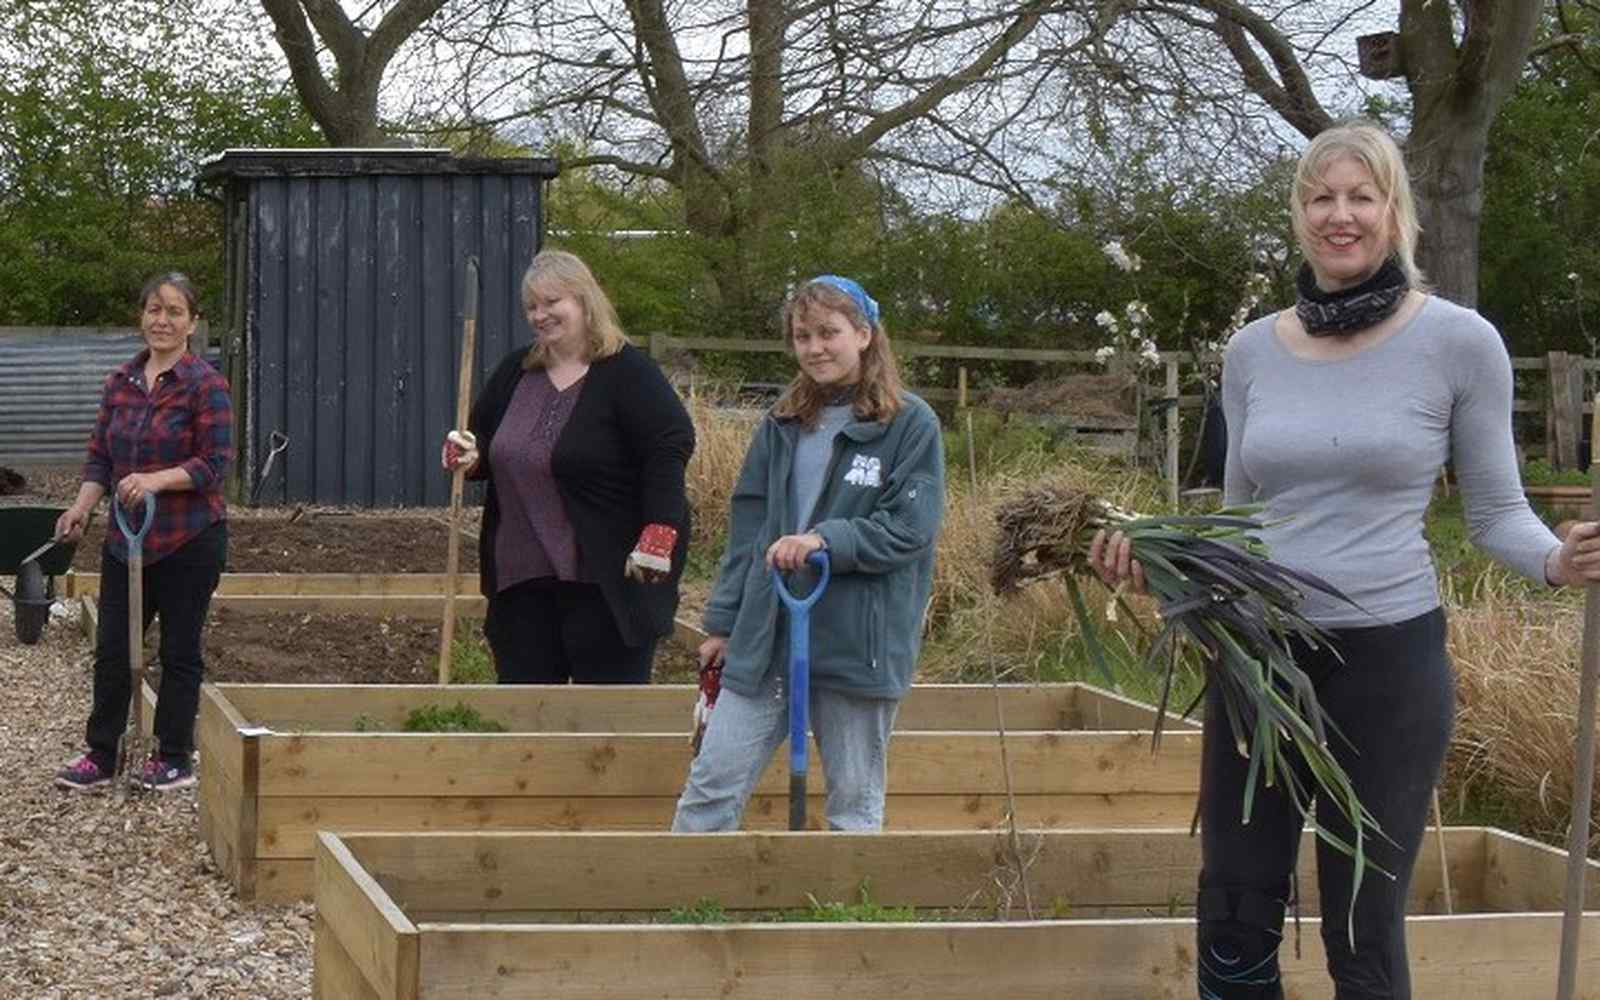 People outside at allotment garden holding produce